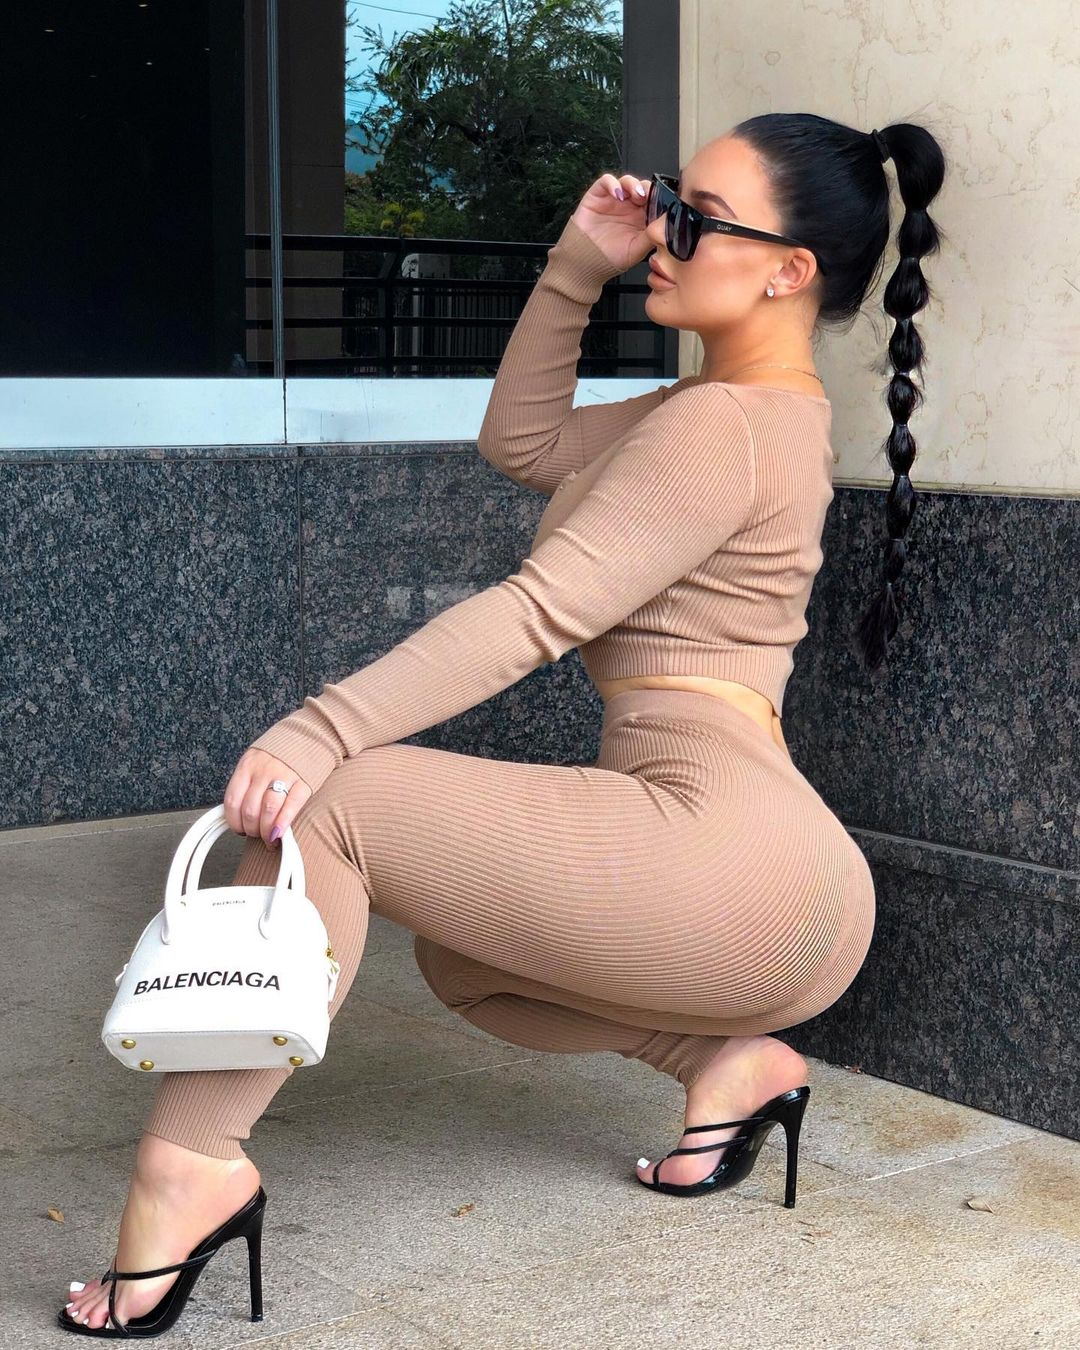 Loulabellee-Wallpapers-Insta-Fit-Bio-Louise-Ella-Wallpapers-Insta-Fit-Bio-12